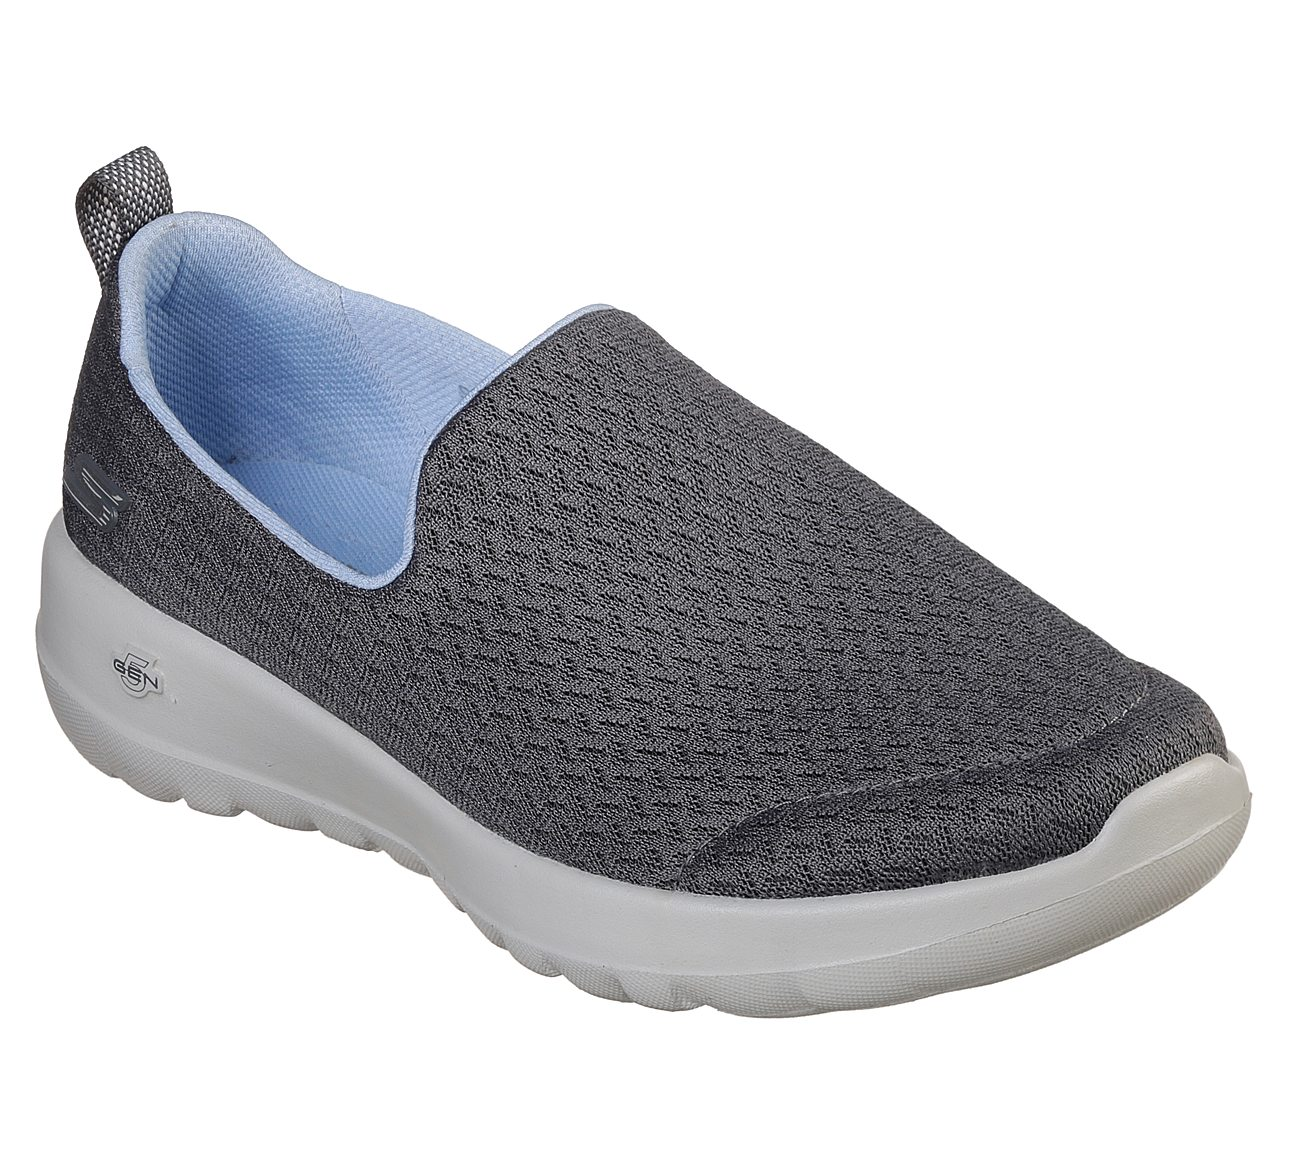 super popular f08d0 80763 Skechers GOwalk Joy - Rejoice. Click tap to zoom